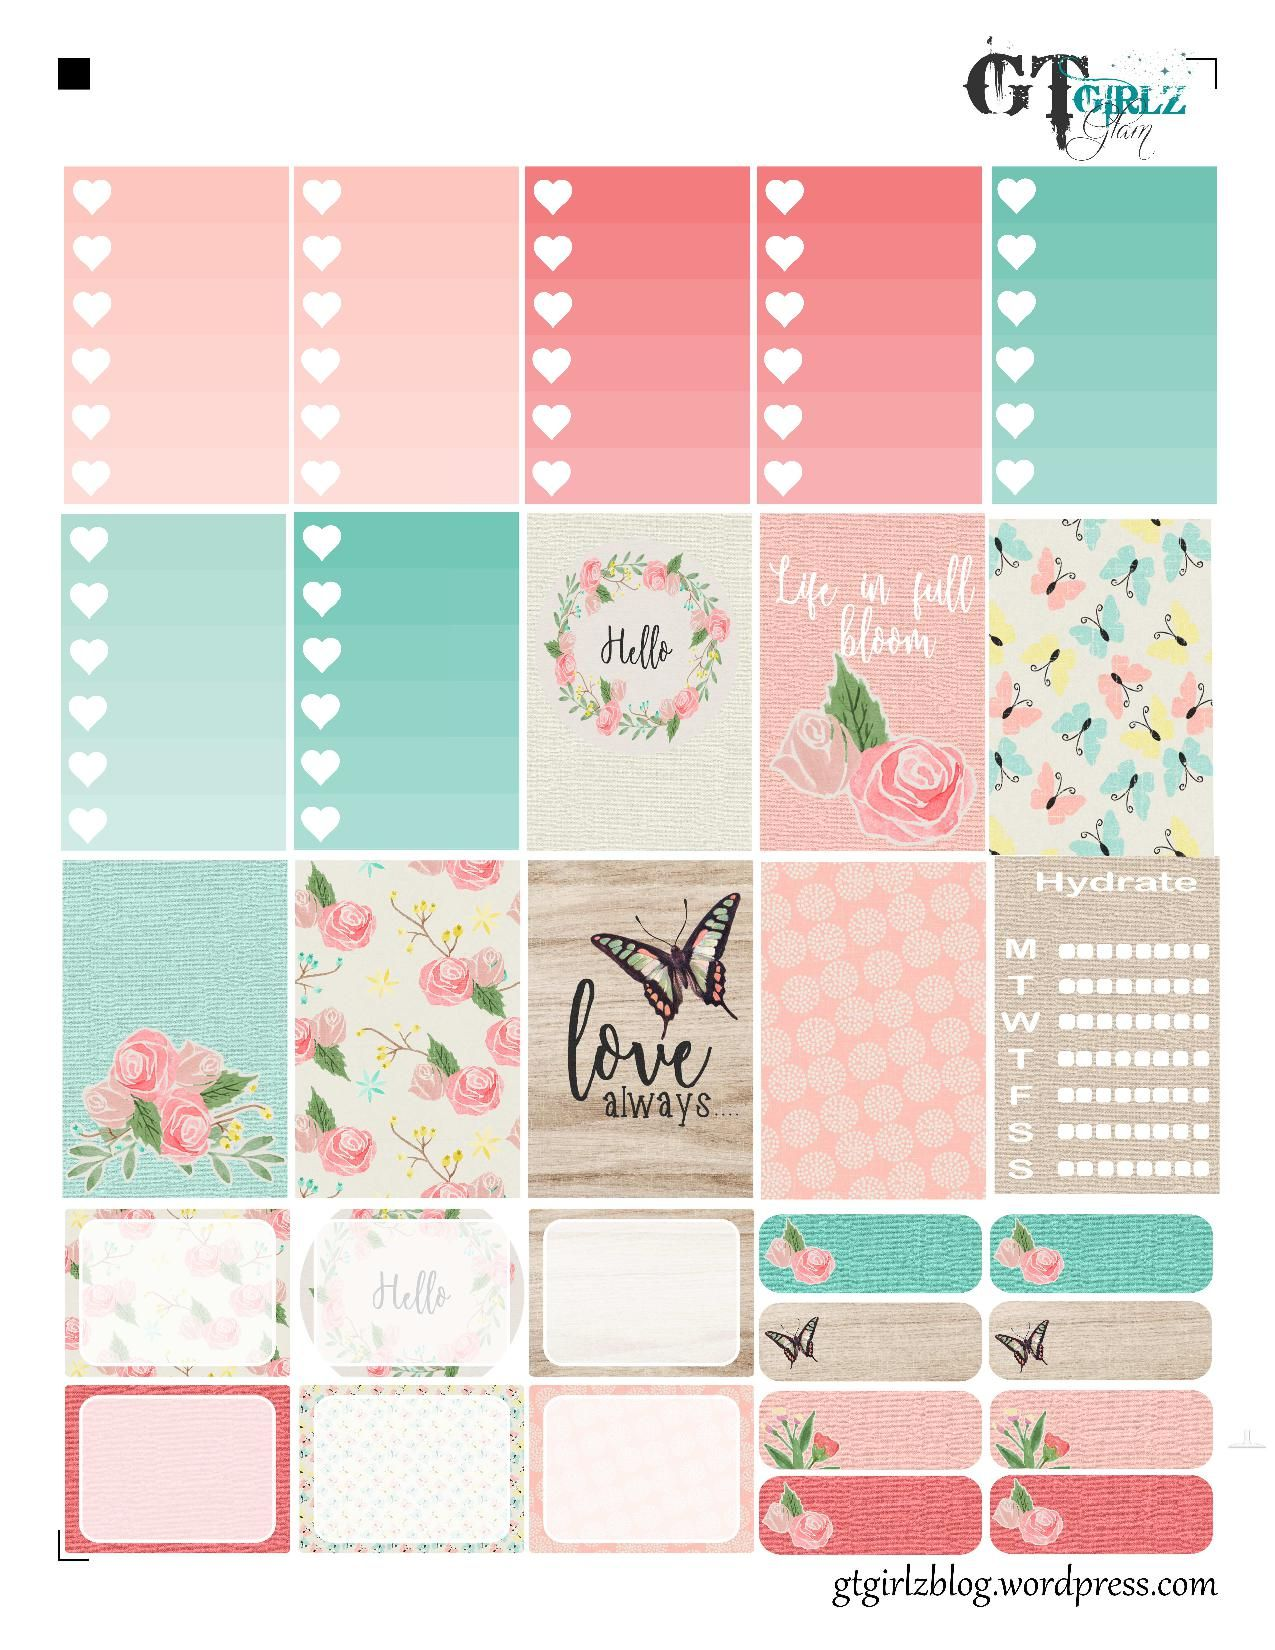 photograph relating to Freebie Planner named Saay Freebie Planner STICKERS Printable planner